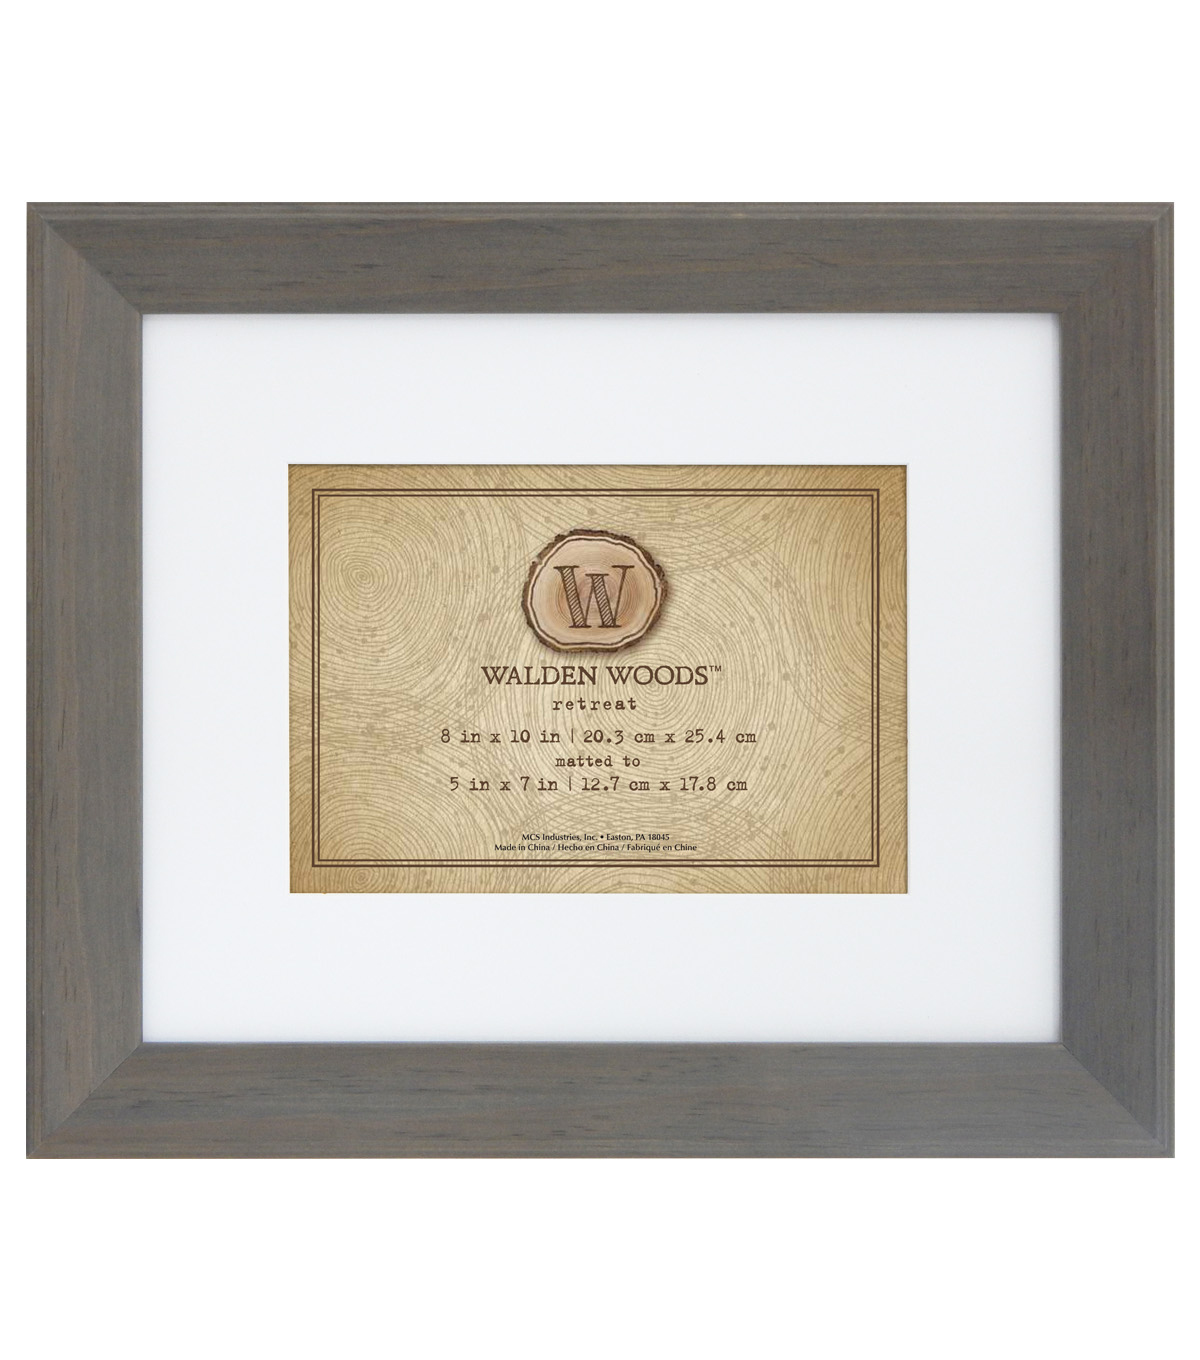 Walden Woods Wall Frame 8X10 To 5X7-Gray